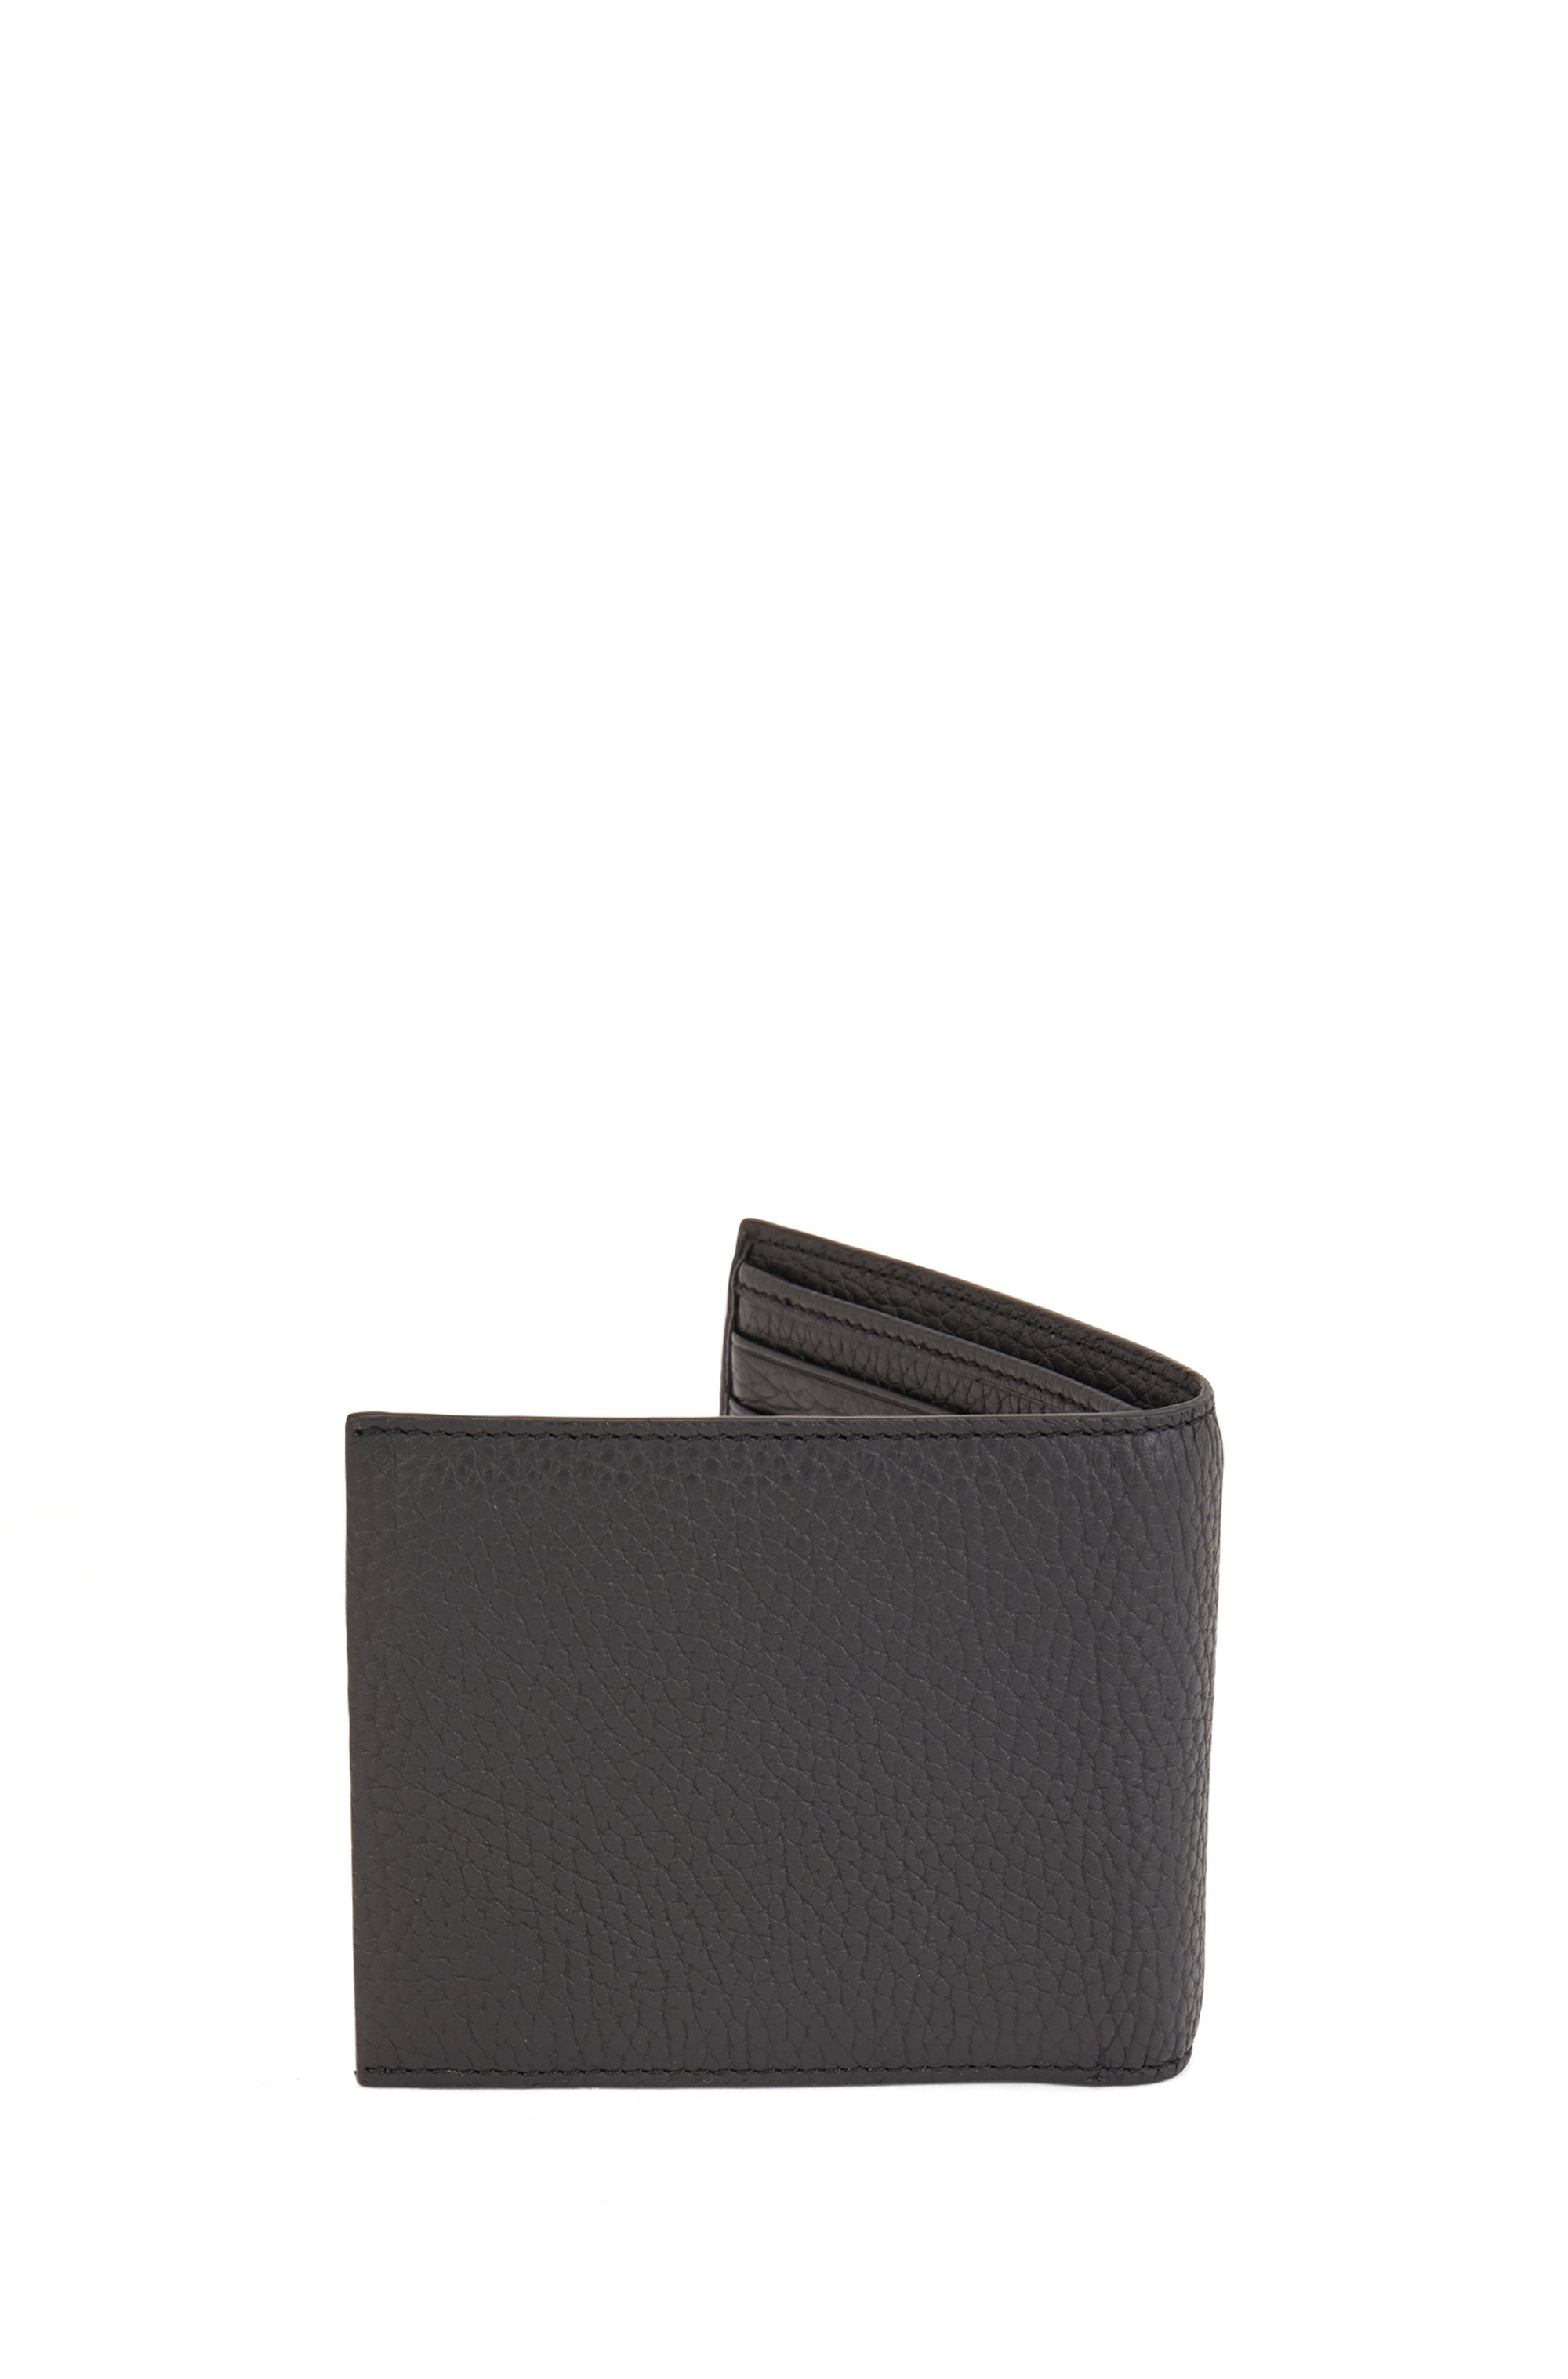 Grained Italian-leather wallet with coin pocket